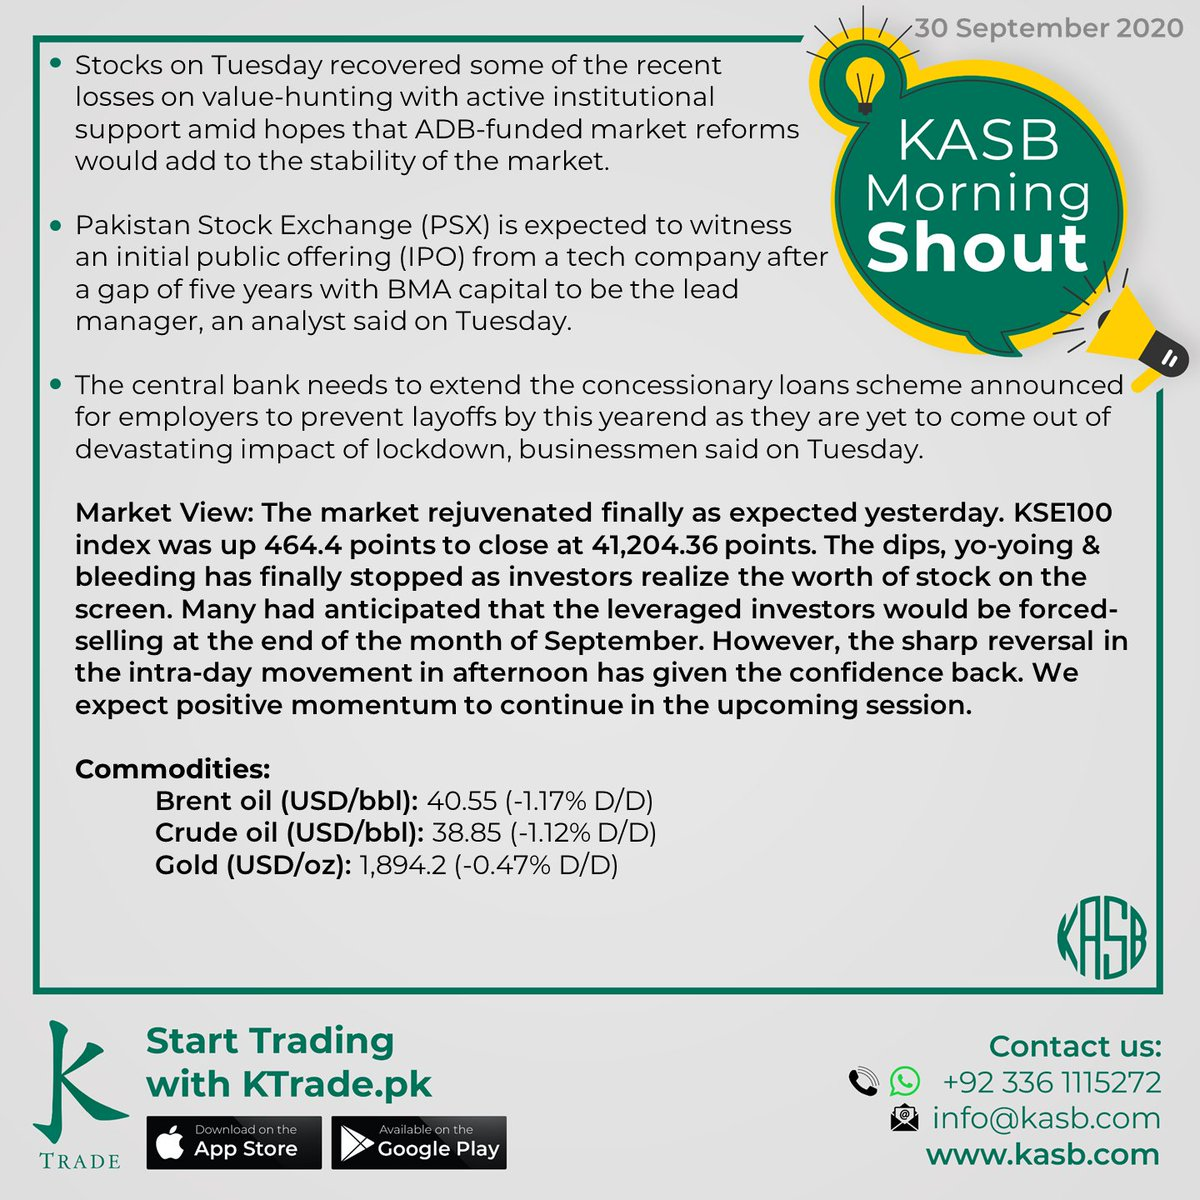 KASB Morning Shout: Our views on today's news #kasb #smartinvesting #psx #stockmarket #KTrade #onlinetrading #pakistaneconomy #imrankhan #sbp #inflation #kse100 #brokeragehouse #psxstocks #marketupdate #emergingmarkets #frontiermarkets #news #morning #today #views https://t.co/qdSVX79L98